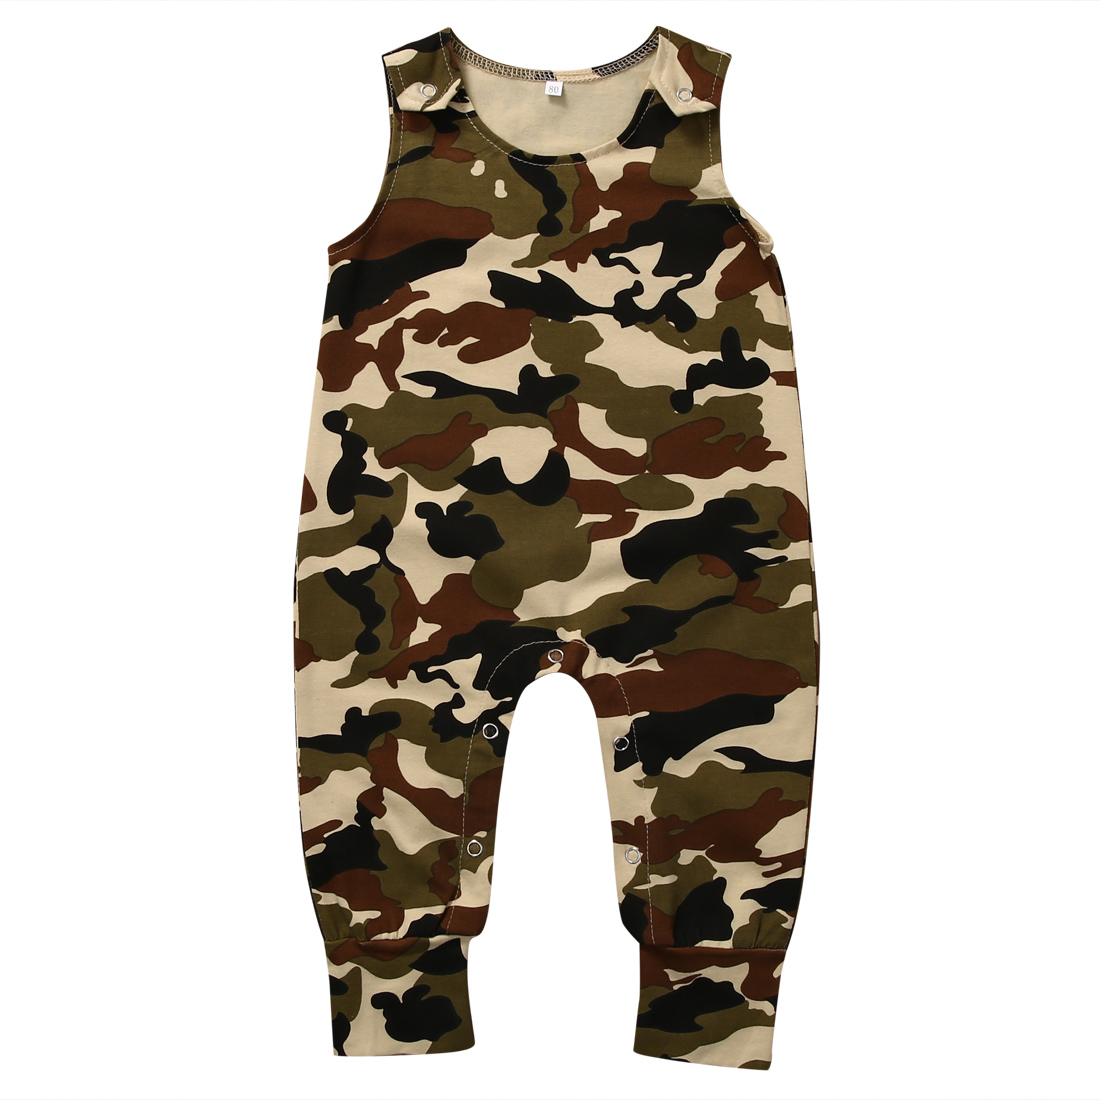 Toddler Baby Girl Boys Infant Romper camouflage color One-piece Sleeveless Outfits Clothes Summer Casual Age 0-24M baby clothing summer infant newborn baby romper short sleeve girl boys jumpsuit new born baby clothes